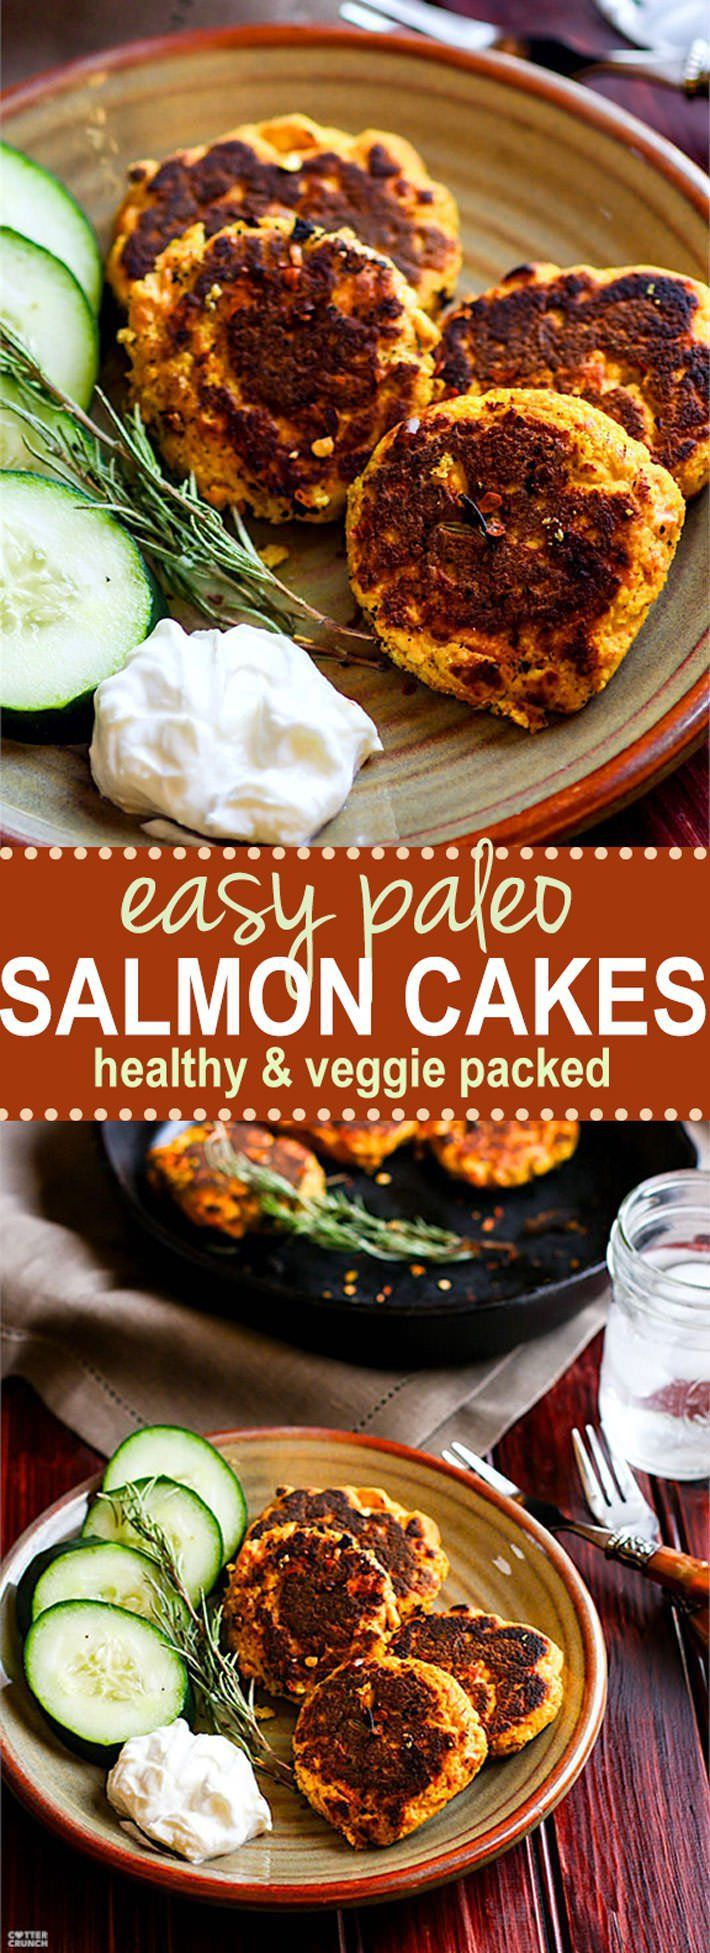 Healthy Vegetable Packed Paleo Salmon Cakes! *Omit Honey for Whole 30*   Super easy, super simple, super delicious! These Paleo salmon cakes take little time. Salmon Cakes that are literally veggie packed and protein packed! Just butternut squash, herbs, egg, salmon, and spices! No wasting leftovers here, just mix and throw on a skillet. Great for a healthy meal, snacks, party appetizers, and are freezer friendly. #whole30 approved. www.cottercrunch.com